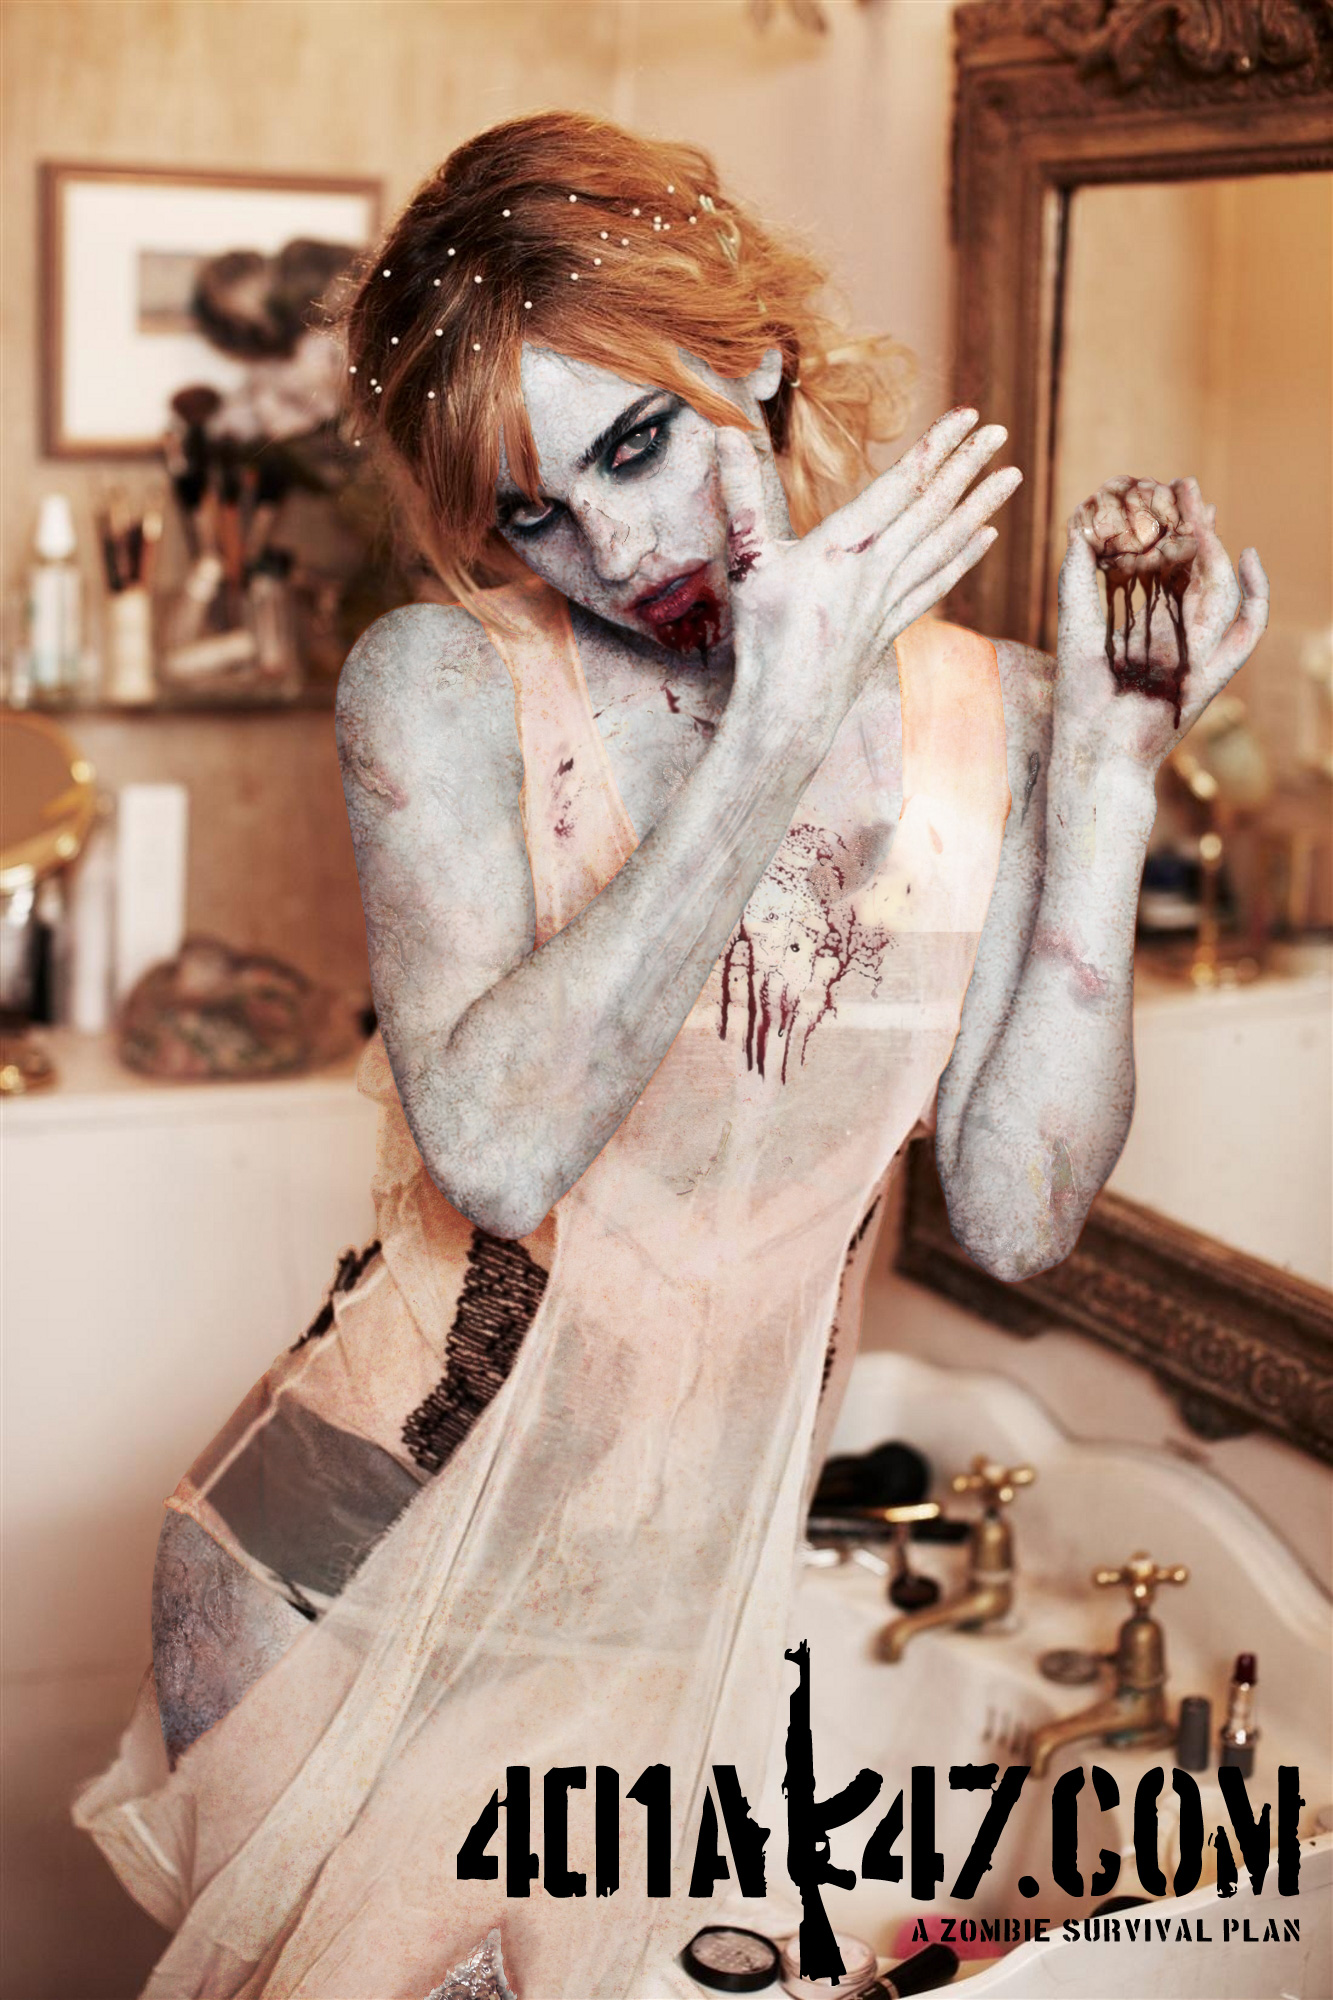 Emma Watson Zombie Pinup sexy hot babe pic - celebrity zombie pin up girl - zombie art